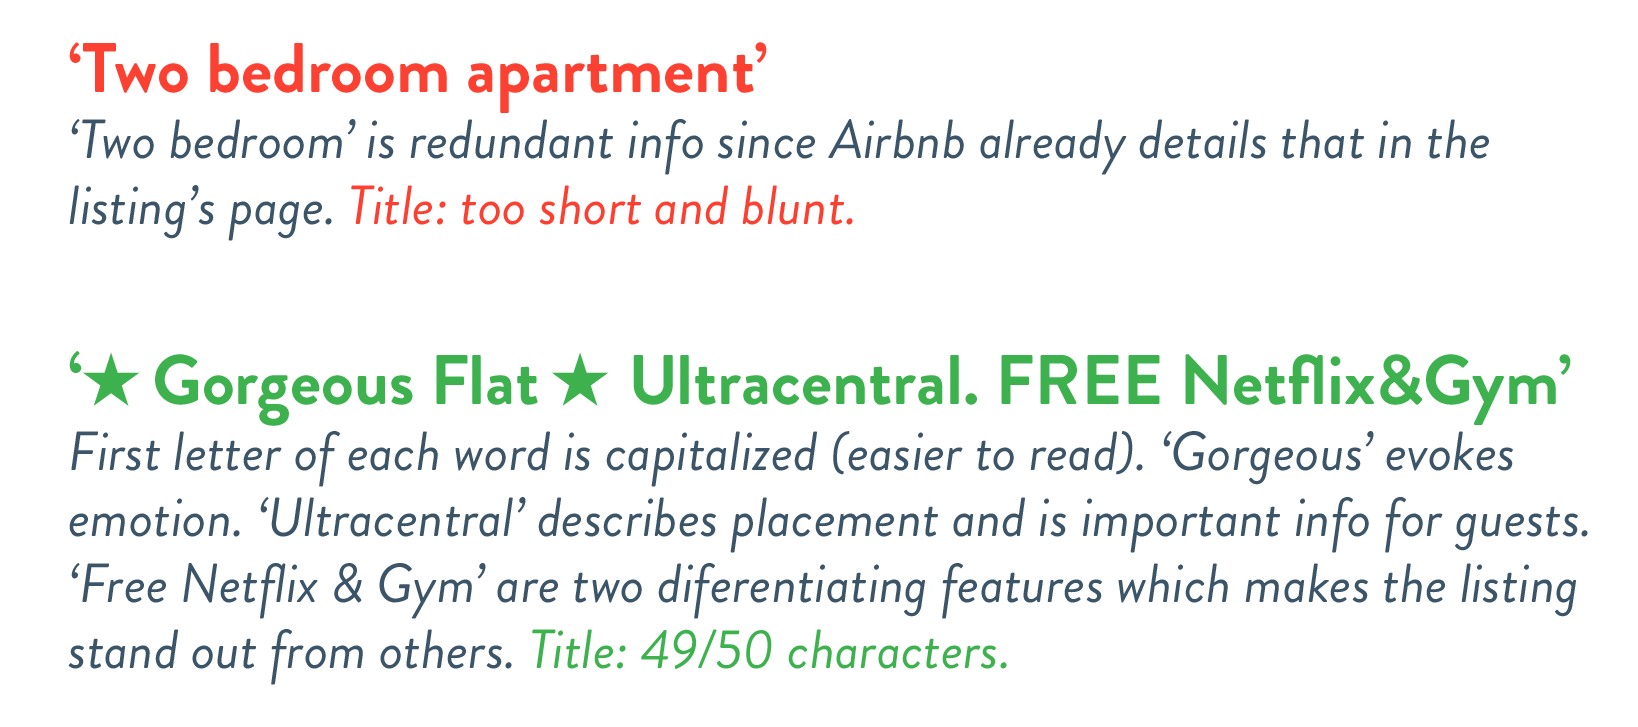 Examples of good and bad titles for short term rentals